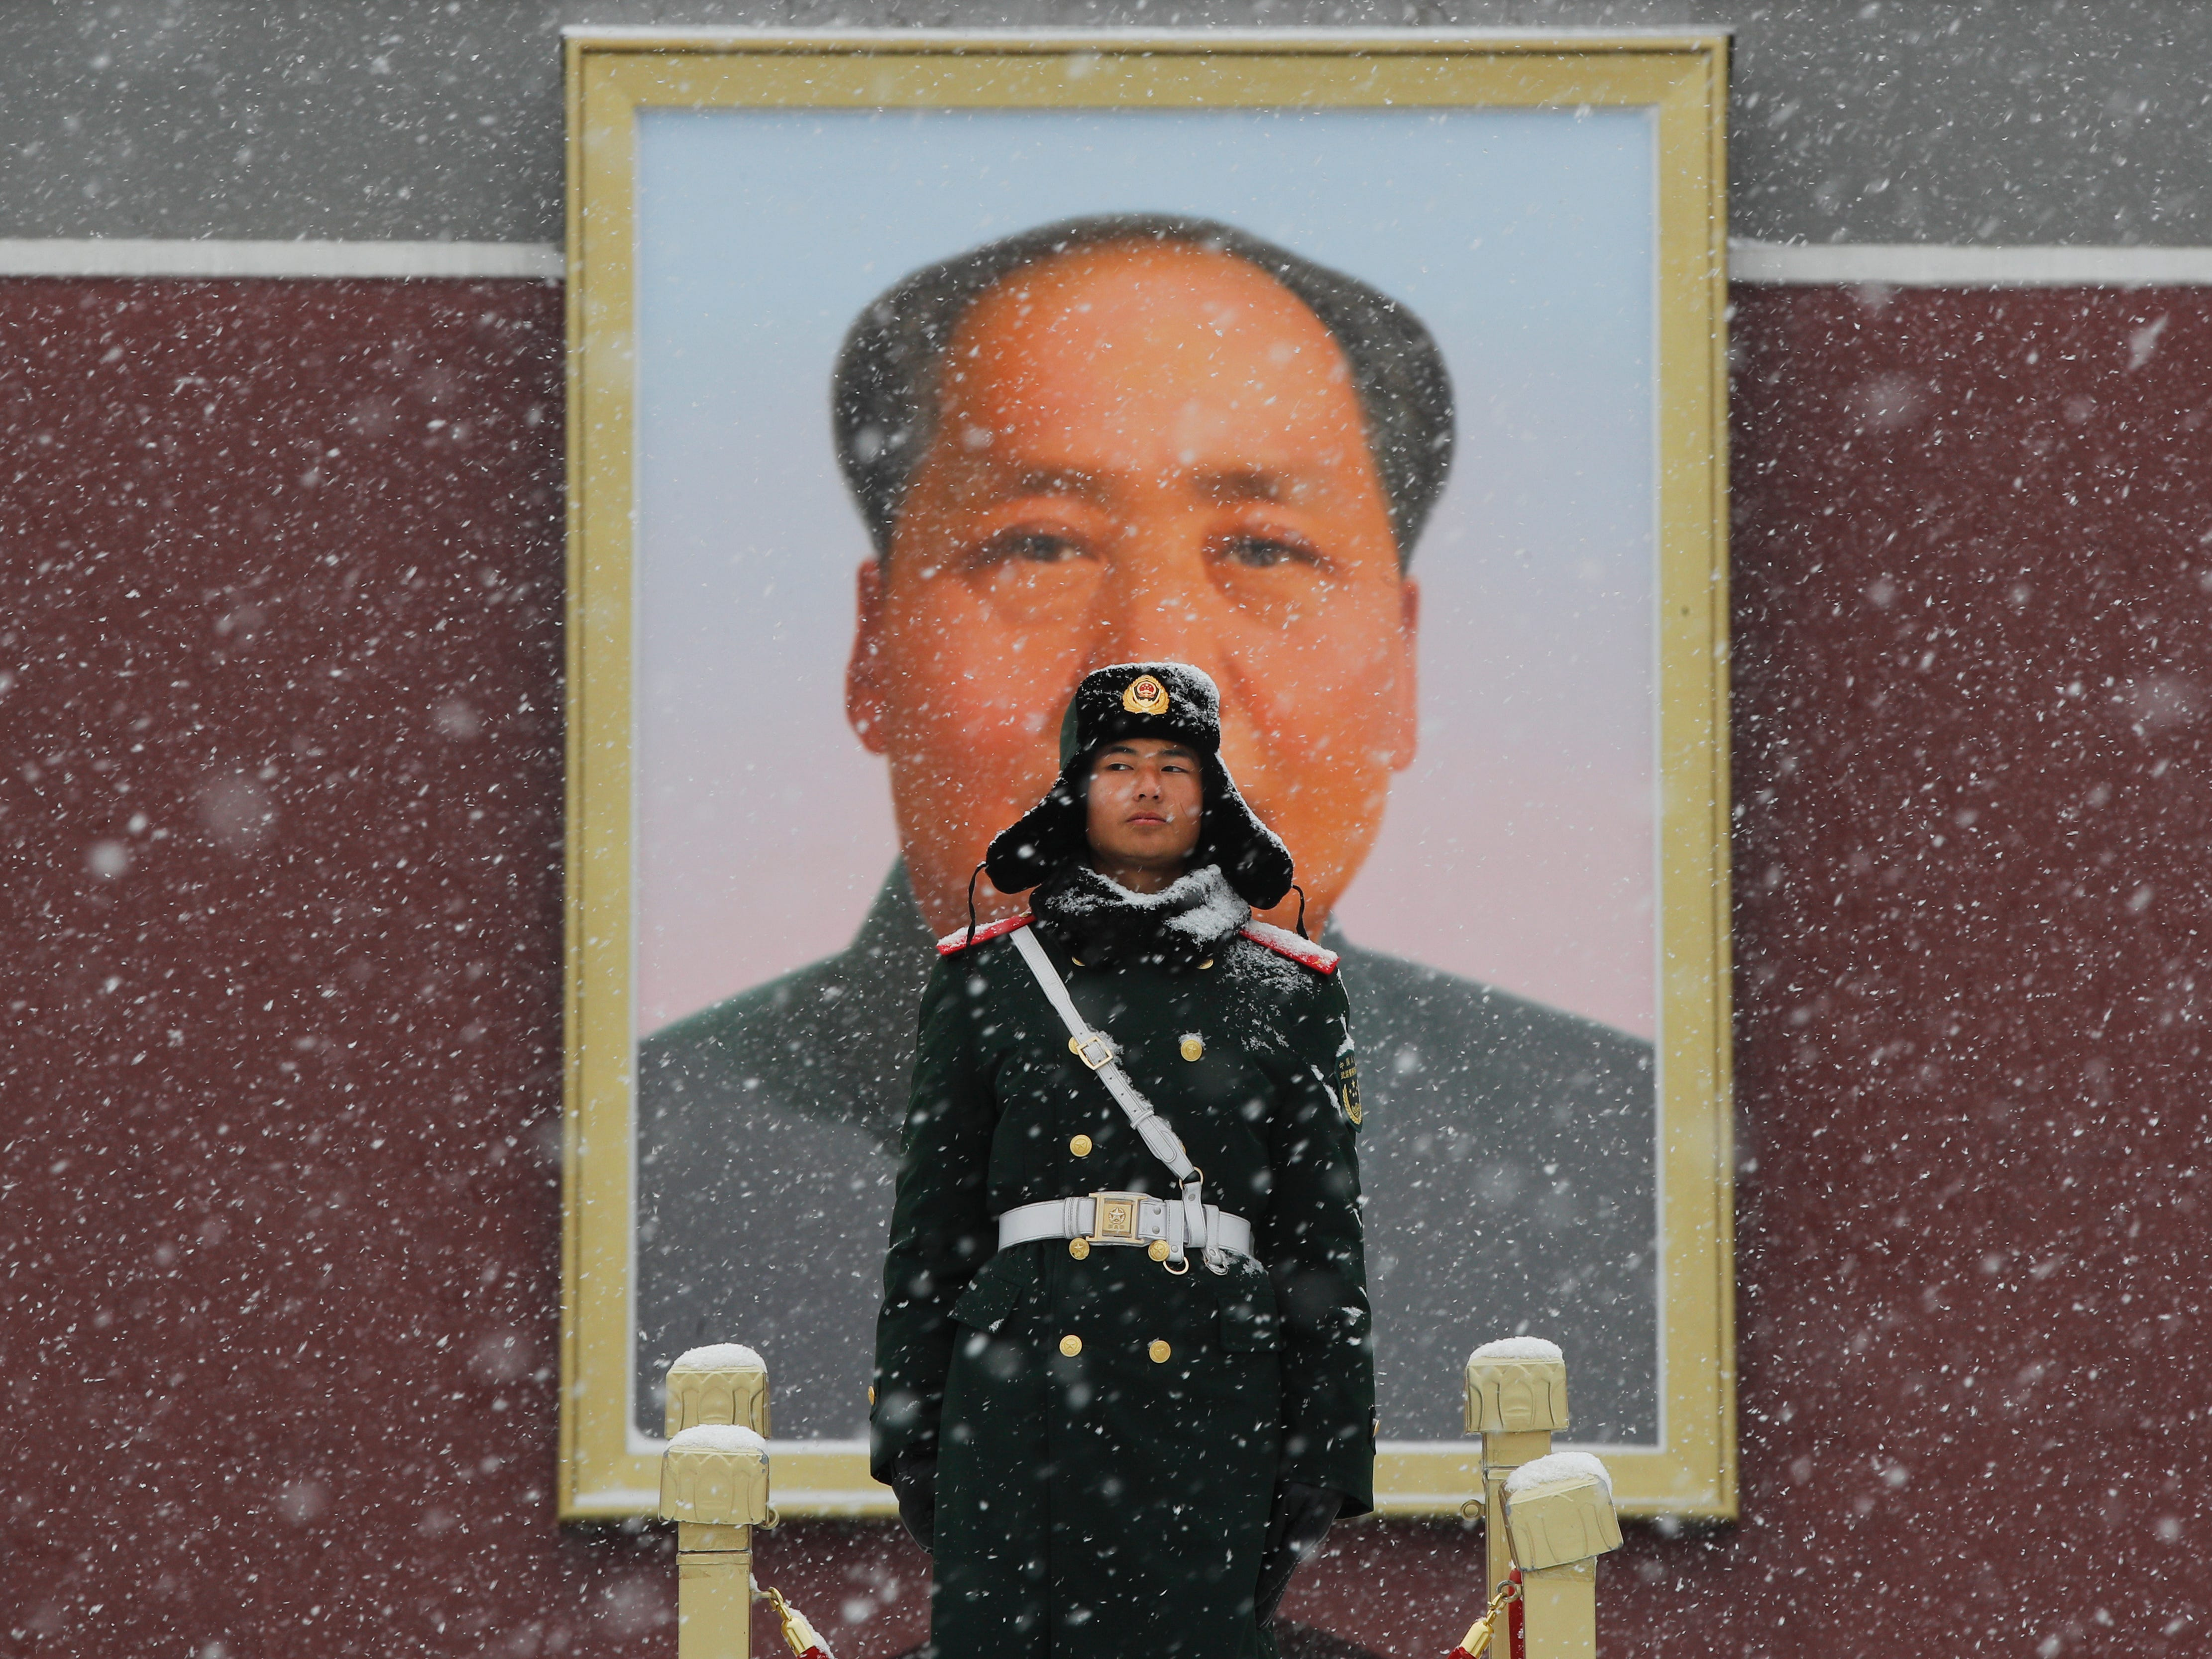 A Chinese paramilitary police officer stands guard under the portrait of former leader Mao Zedong outside the Tiananmen Gate as snow falls in Beijing, Tuesday, Feb. 12, 2019. China's capital is mostly dry in the winter but a storm system brought snow to the city on Tuesday morning.